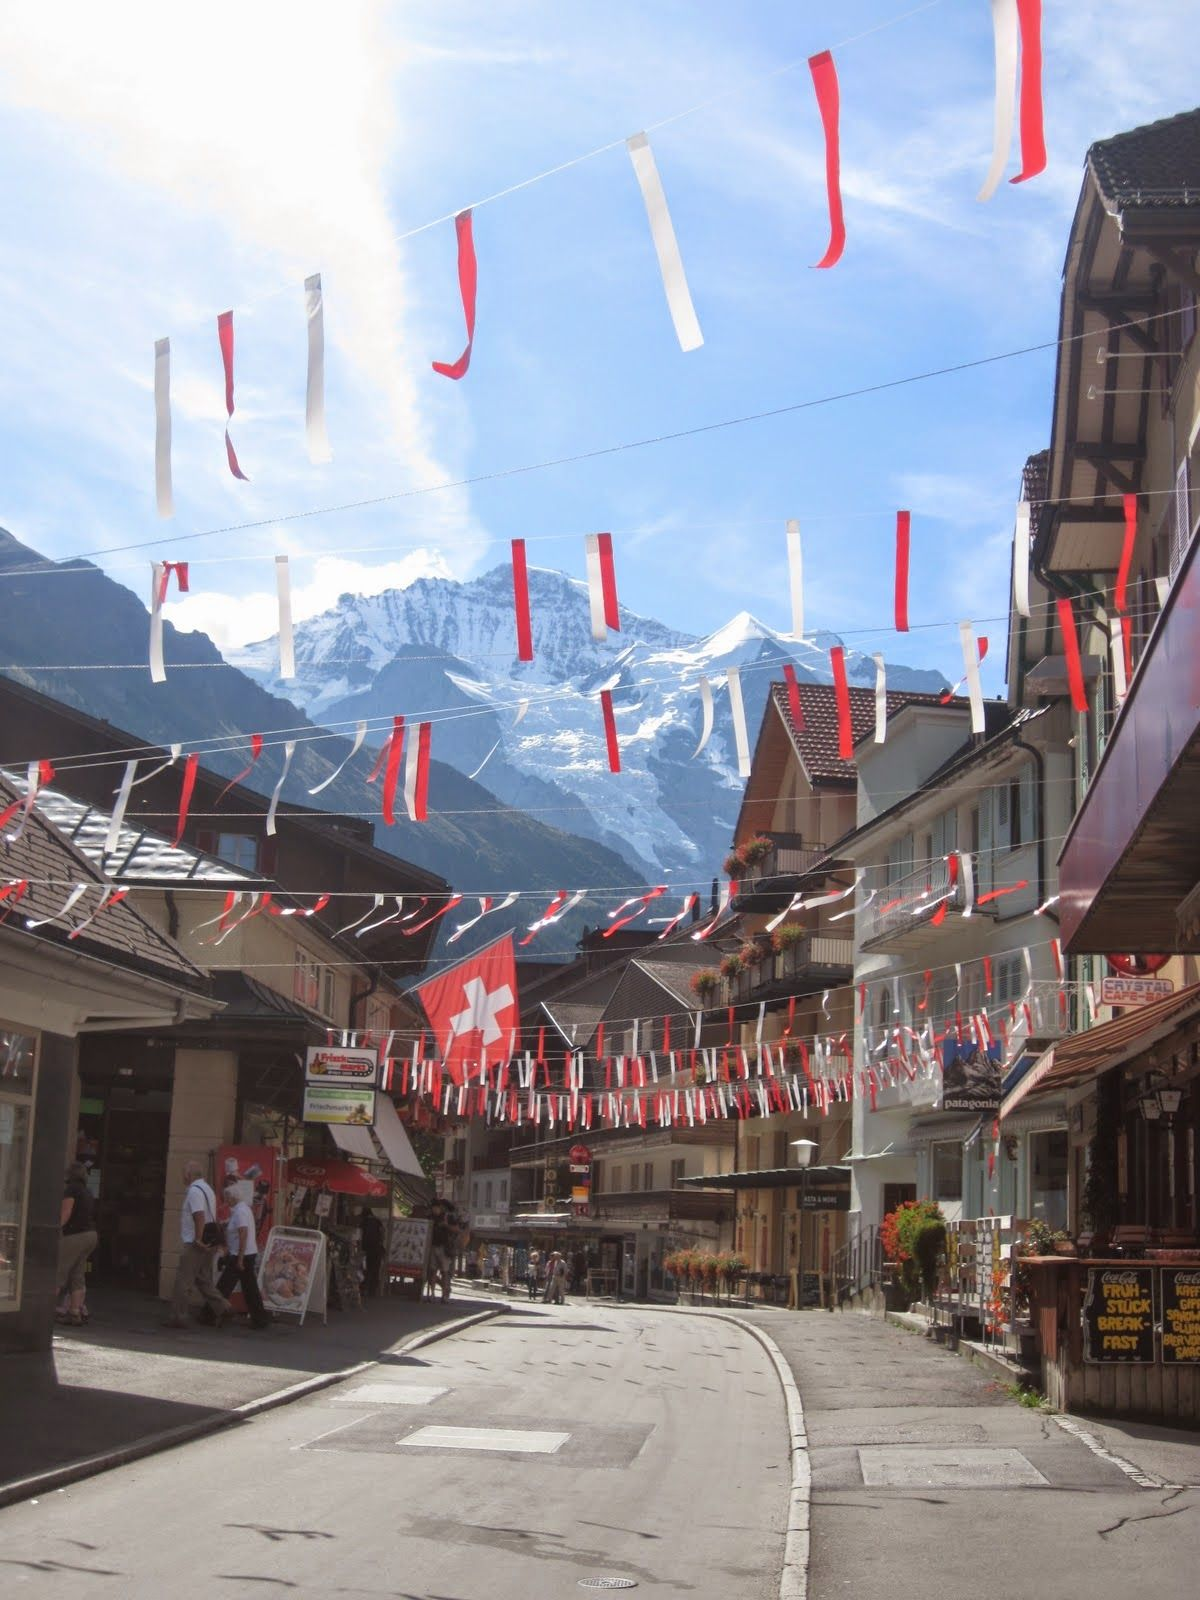 I'm an Outlaw, Not a Hero: Wengen, the halfway point of the Jungfrau Marathon, Switzerland